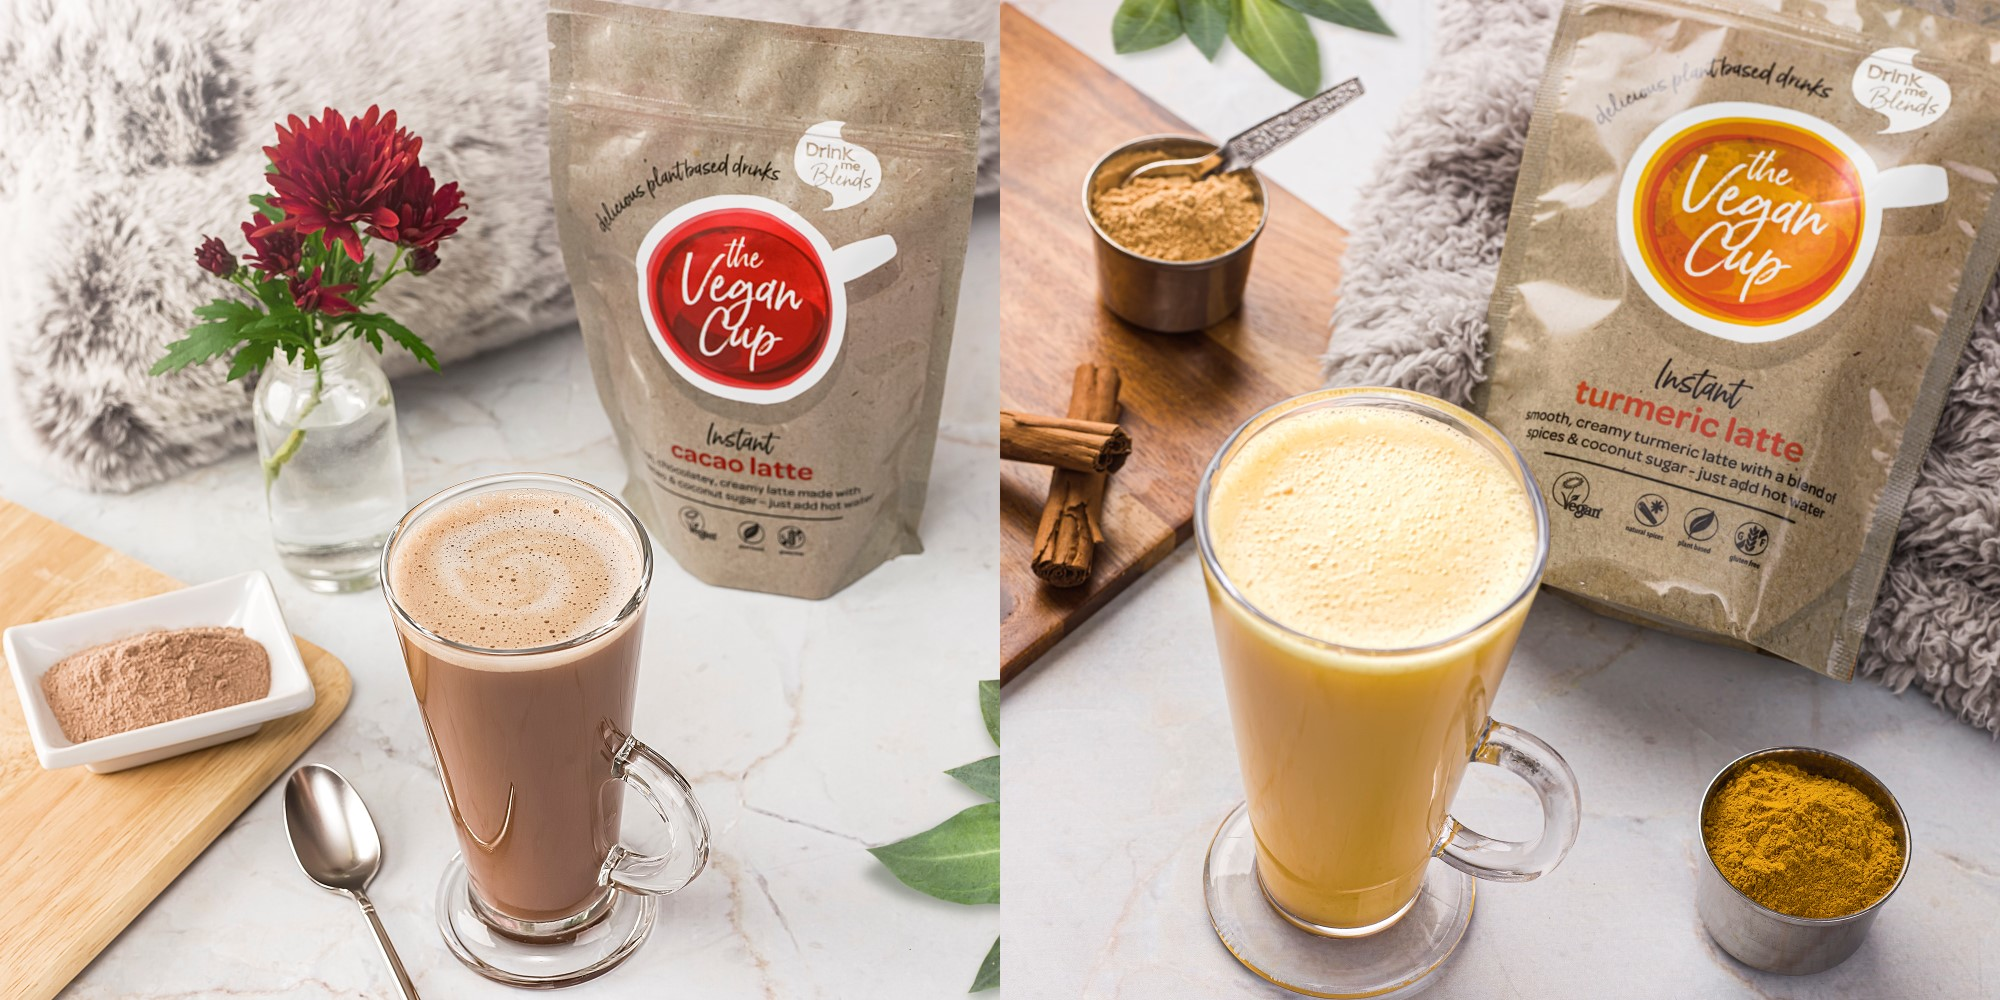 Introducing The Vegan Cup from Drink me Blends